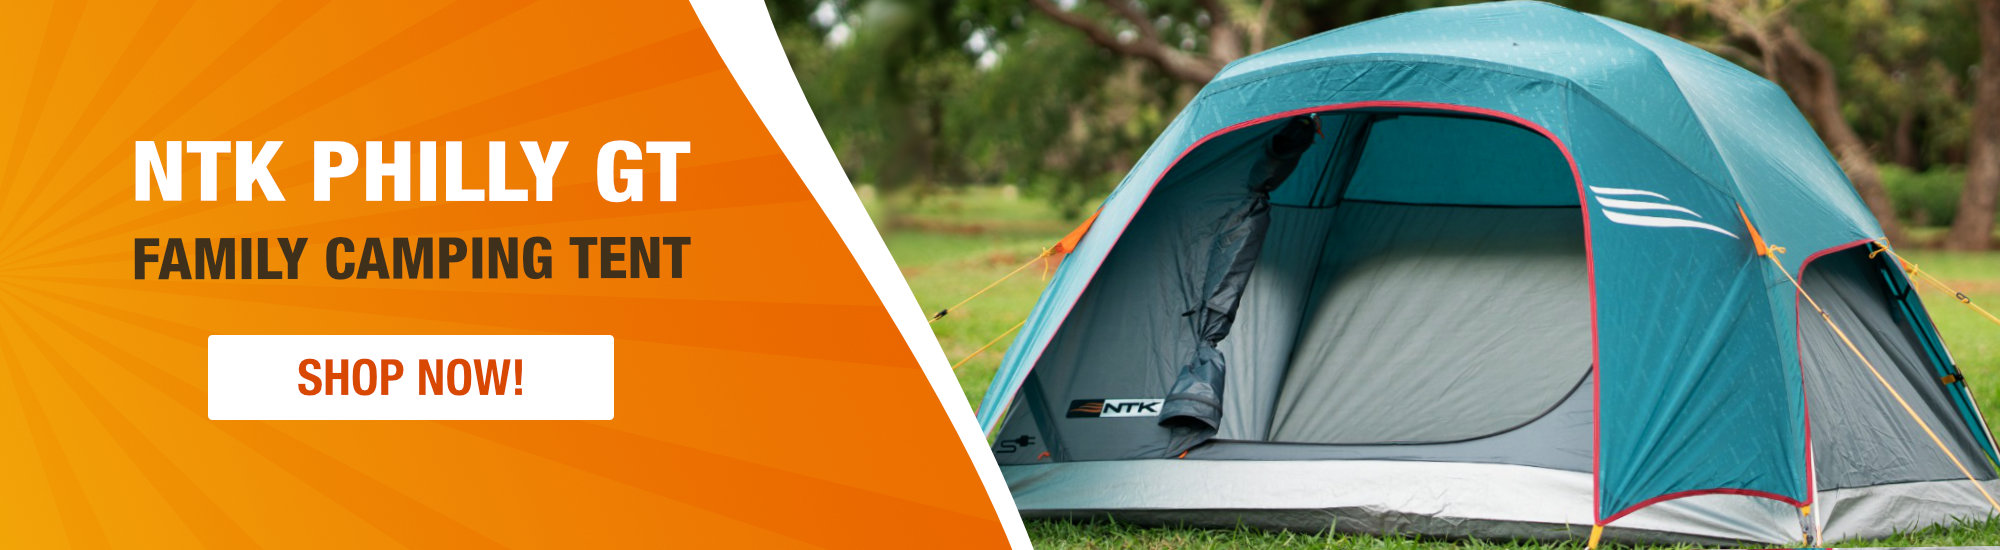 NTK Philly GT Family Camping Tent